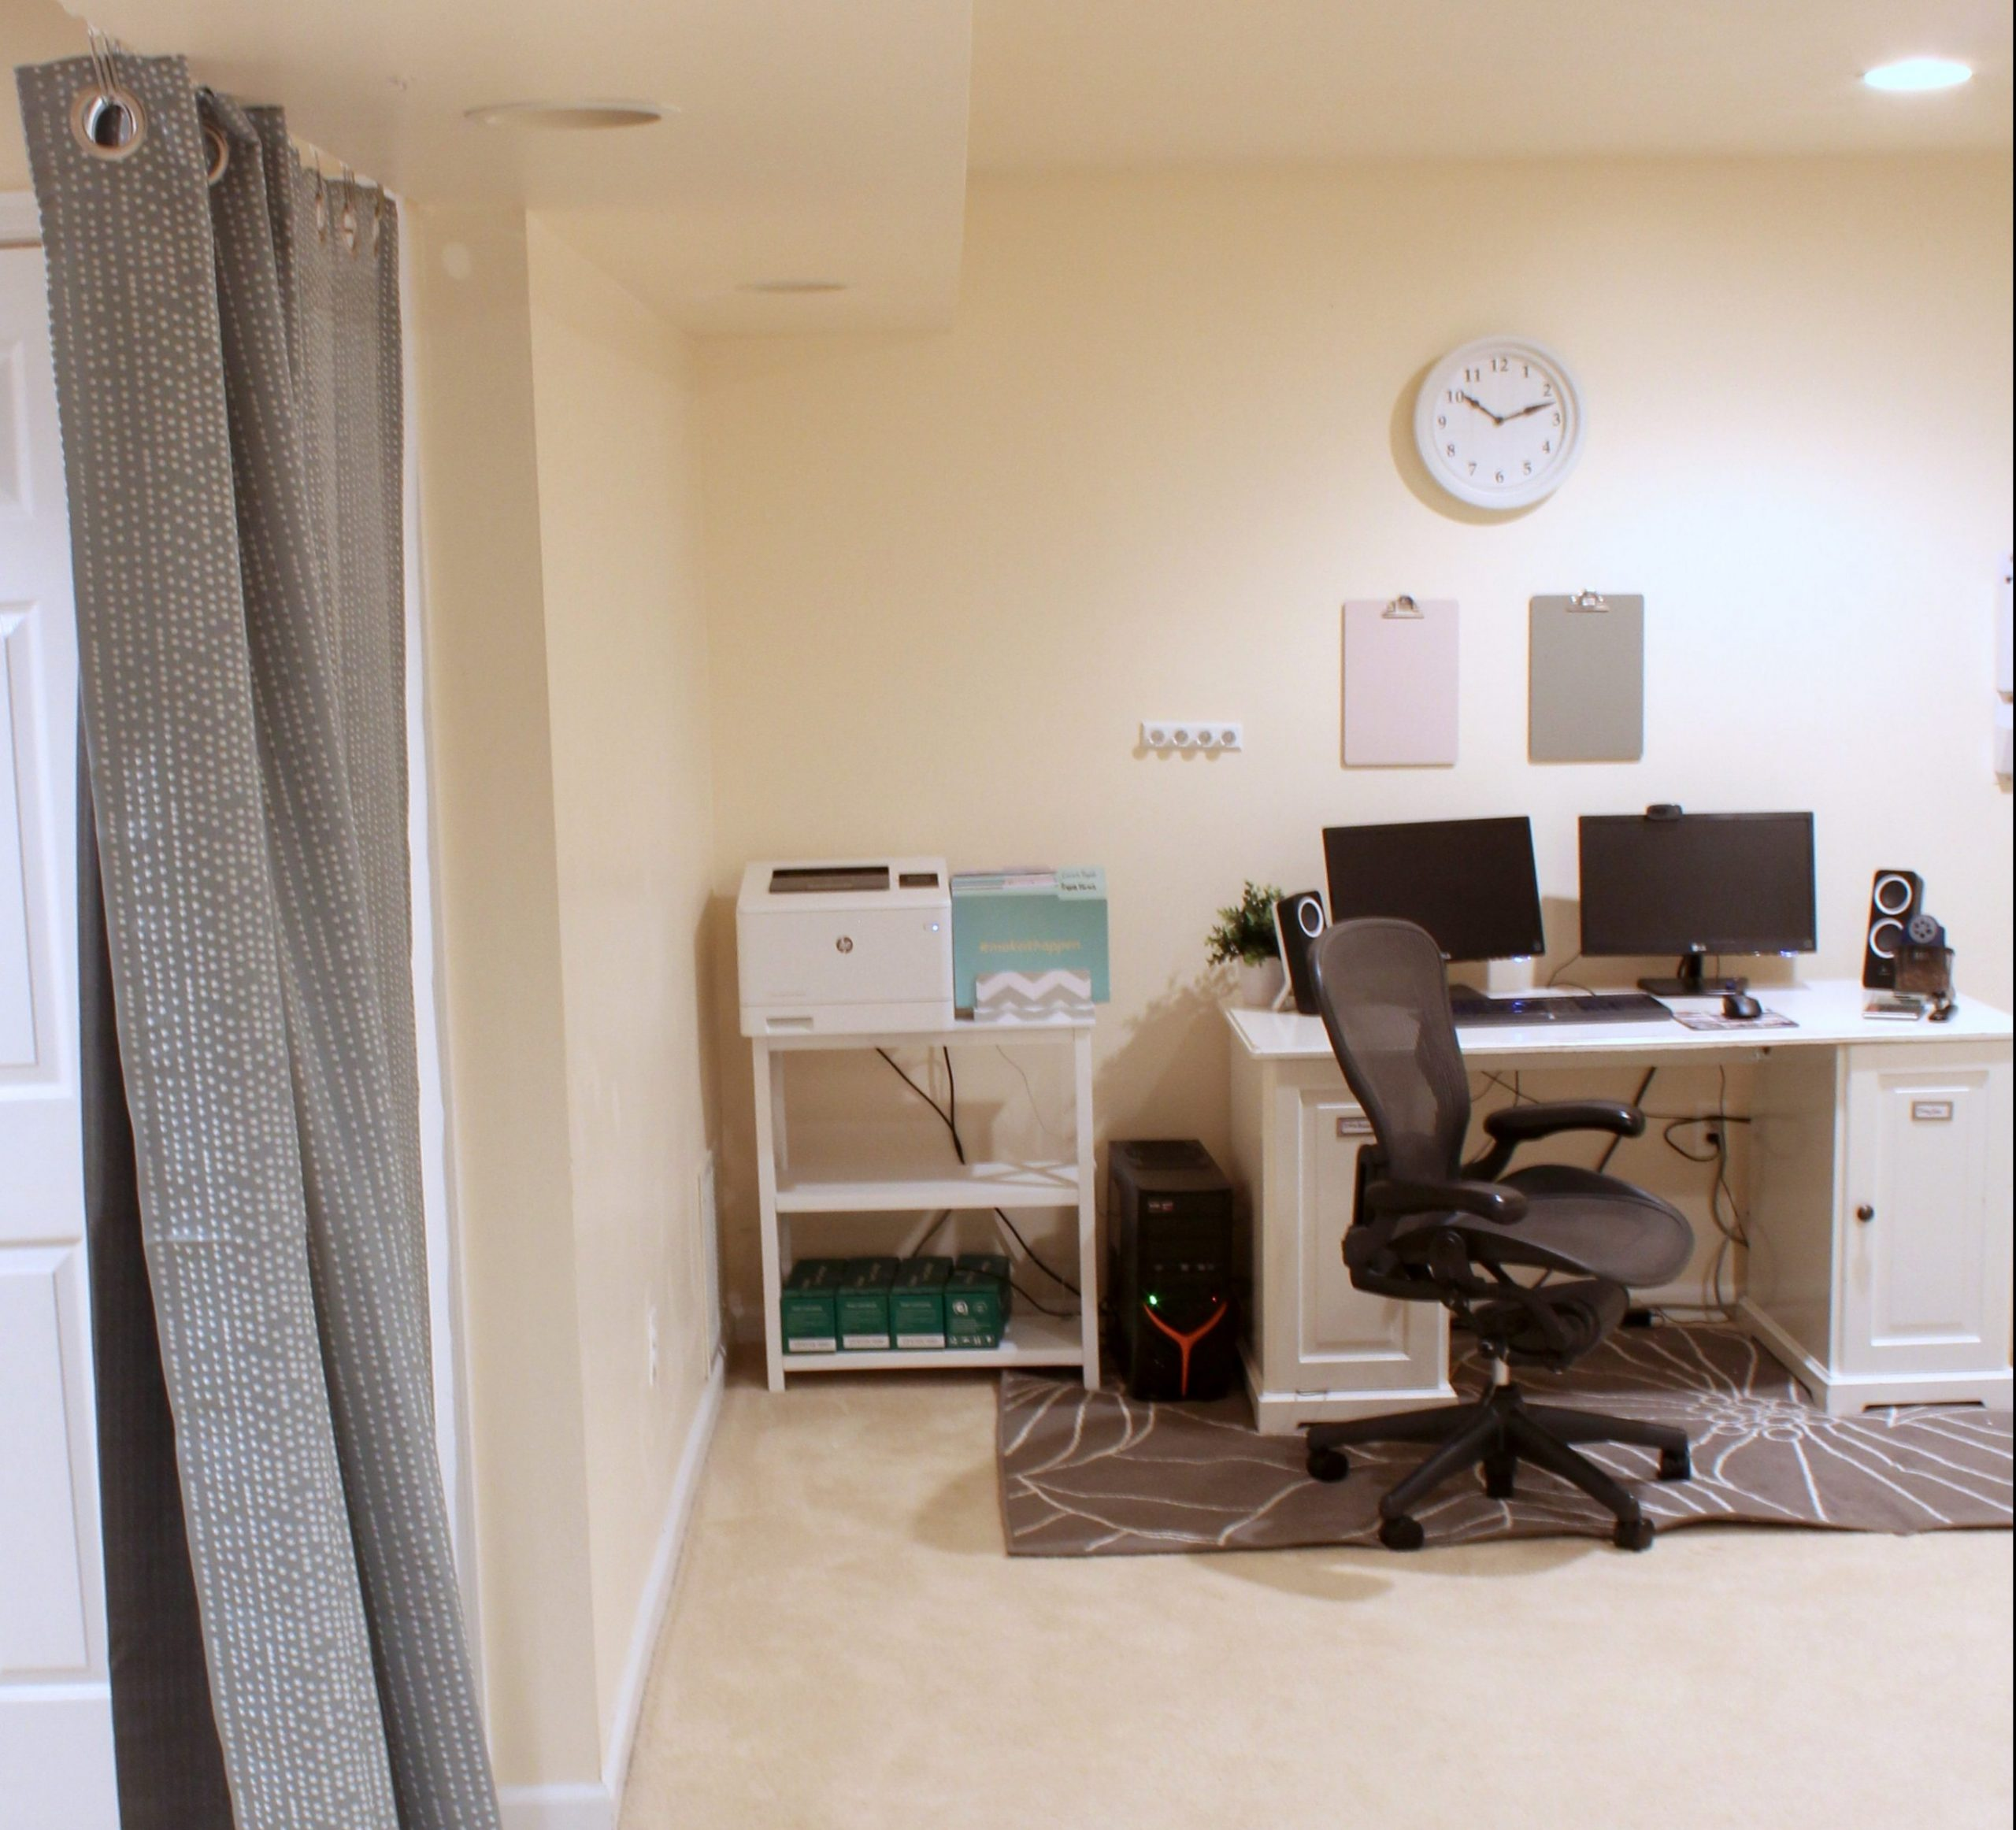 Home Office Ideas on a Budget: 9 Easy Office Upgrades  Busy Budgeter - Home Office Ideas Cheap